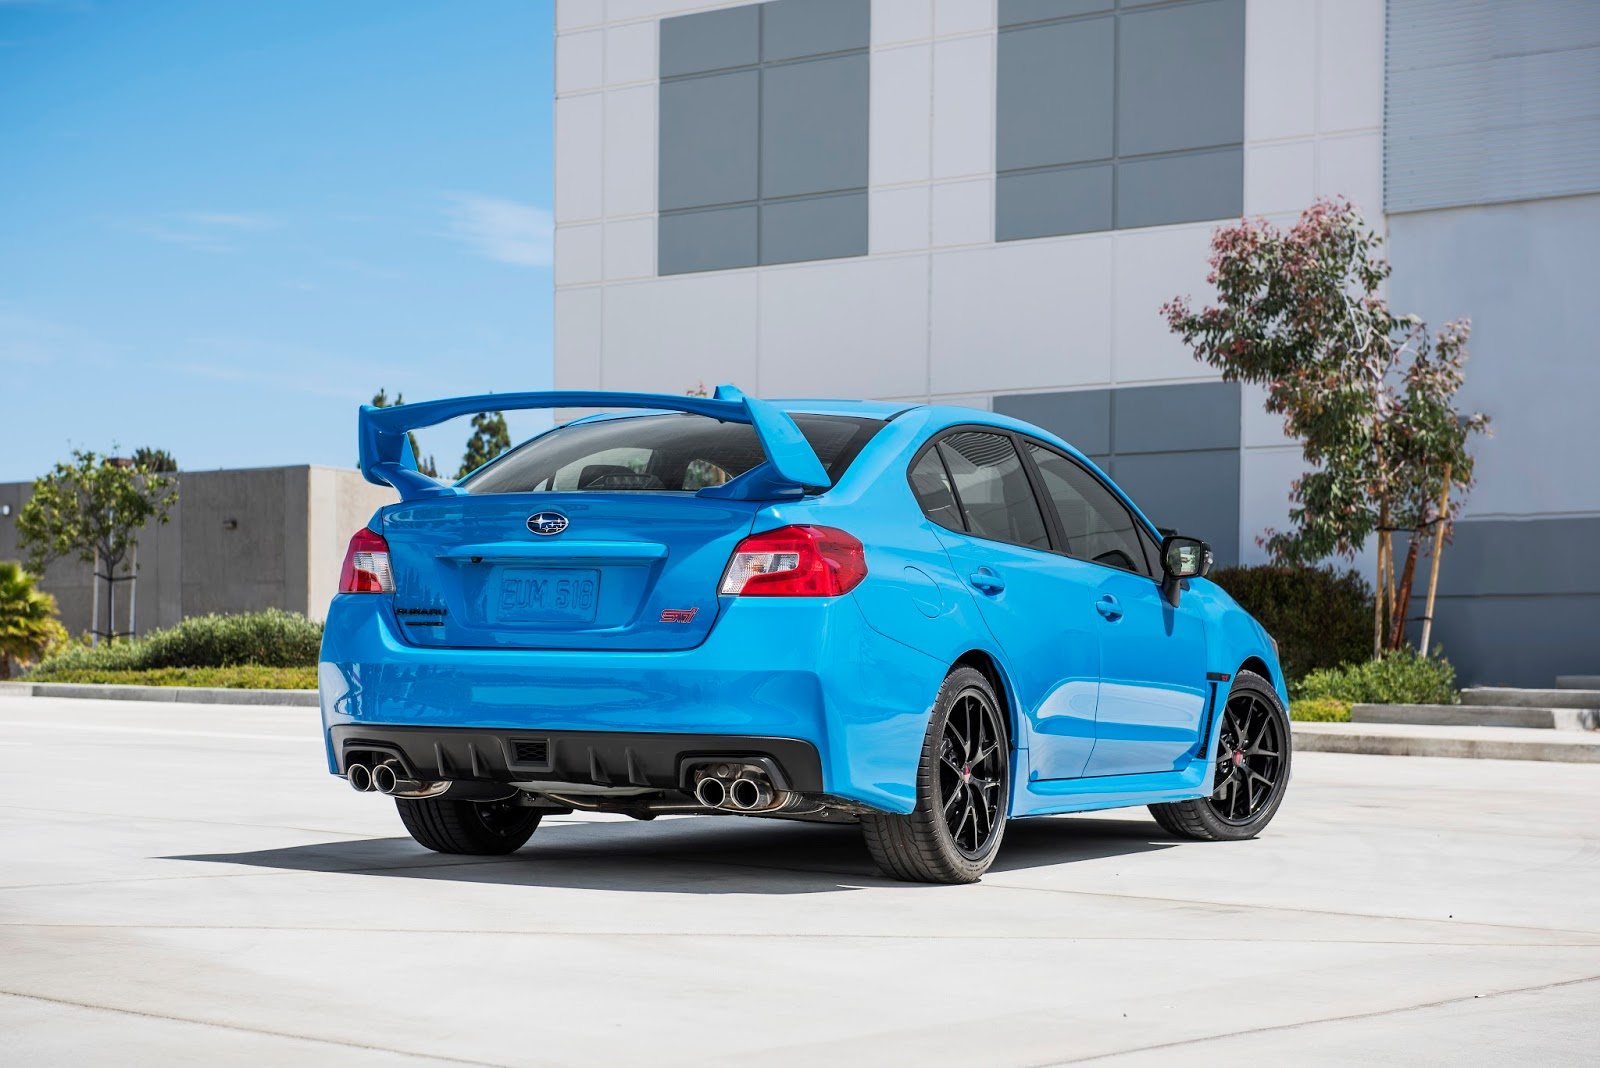 here 39 s the scoop limited edition series hyperblue edition subaru wrx sti and brz sport subaru. Black Bedroom Furniture Sets. Home Design Ideas